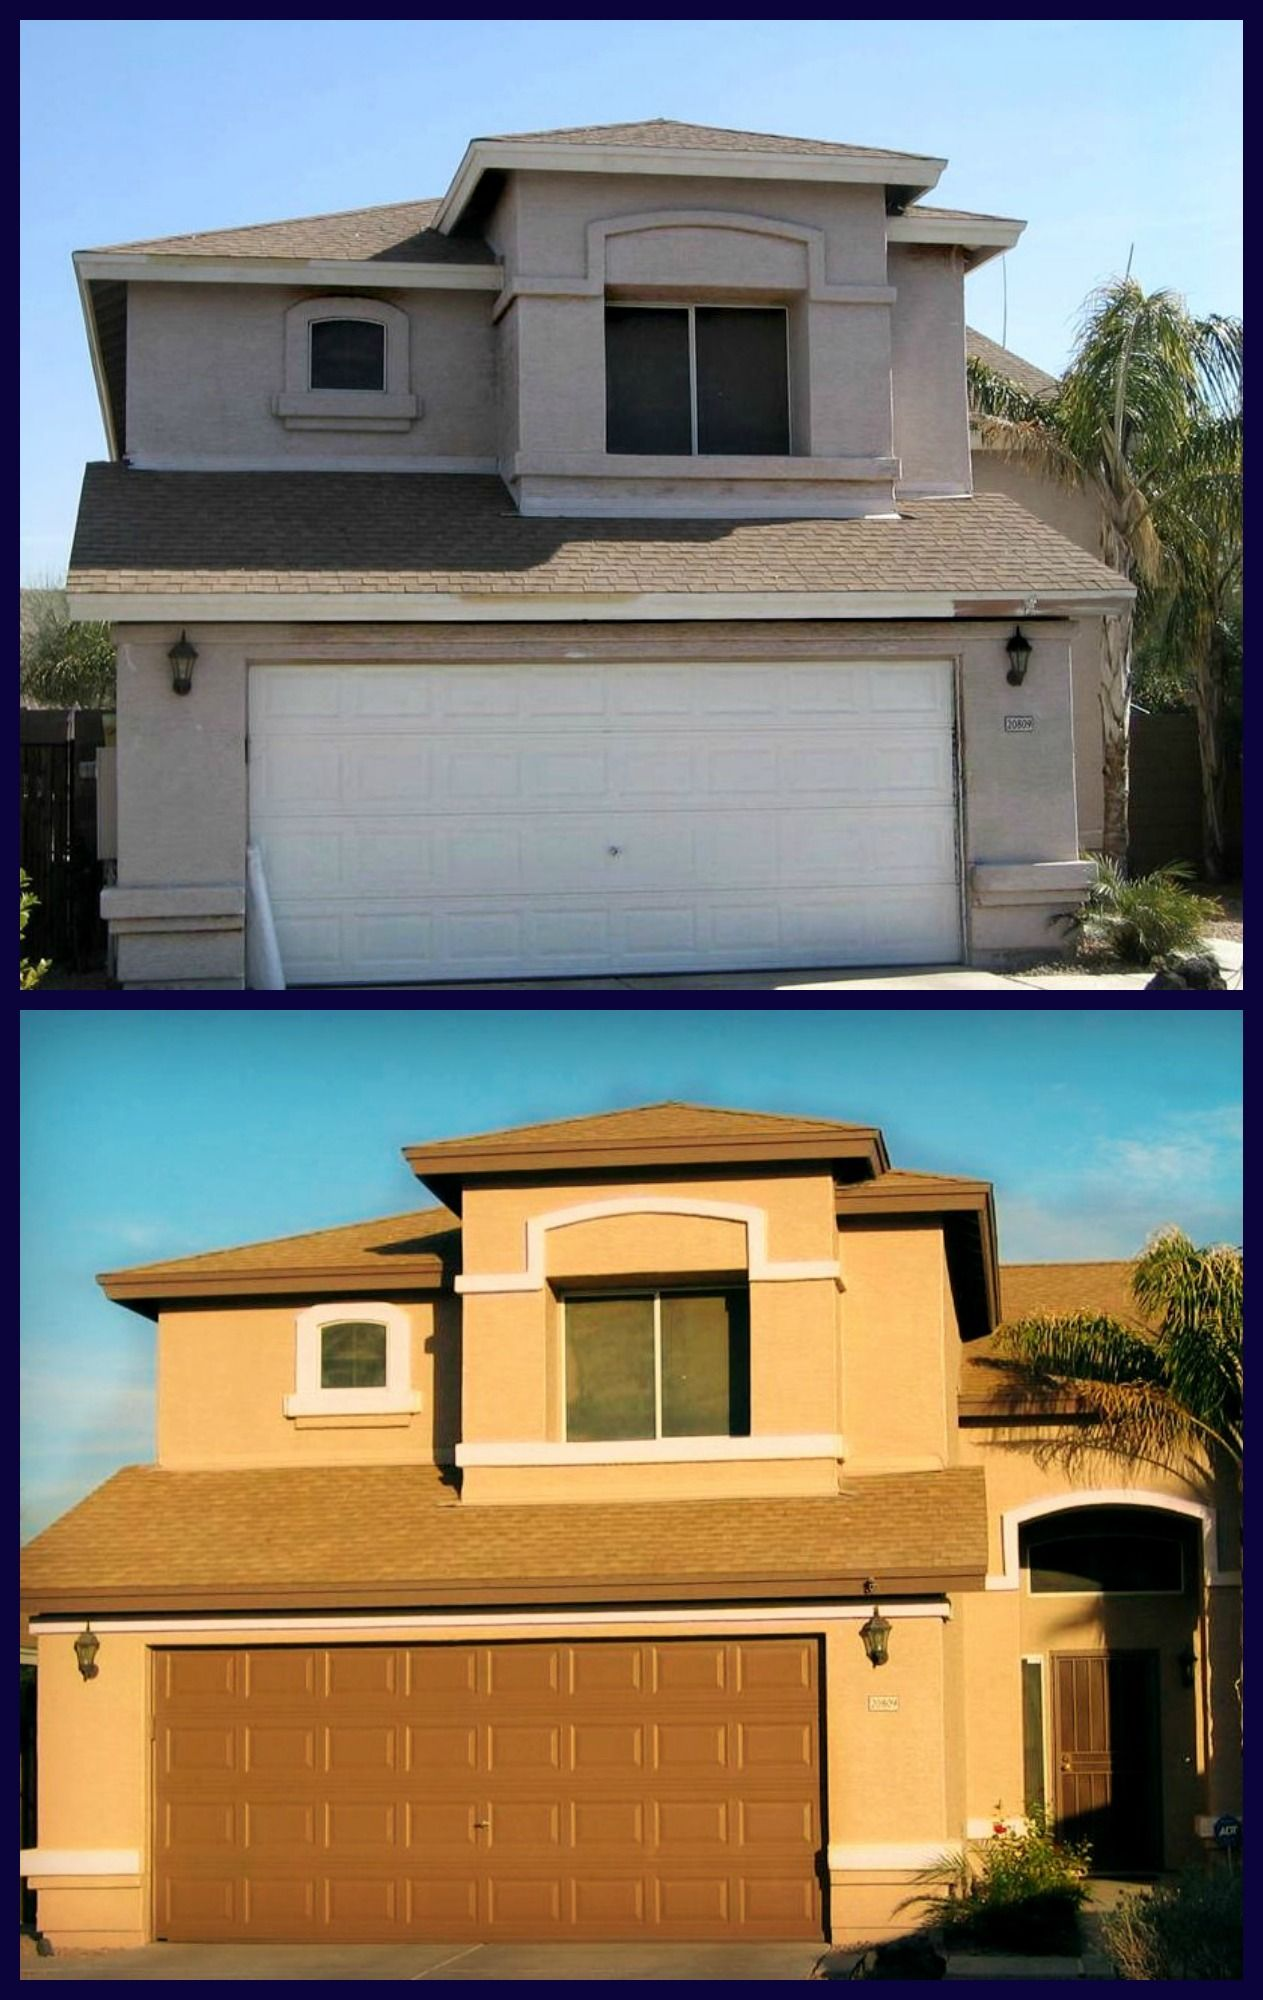 Before And After Painting Wood Exterior San Diego Houses Stucco Homes Spanish Style Home